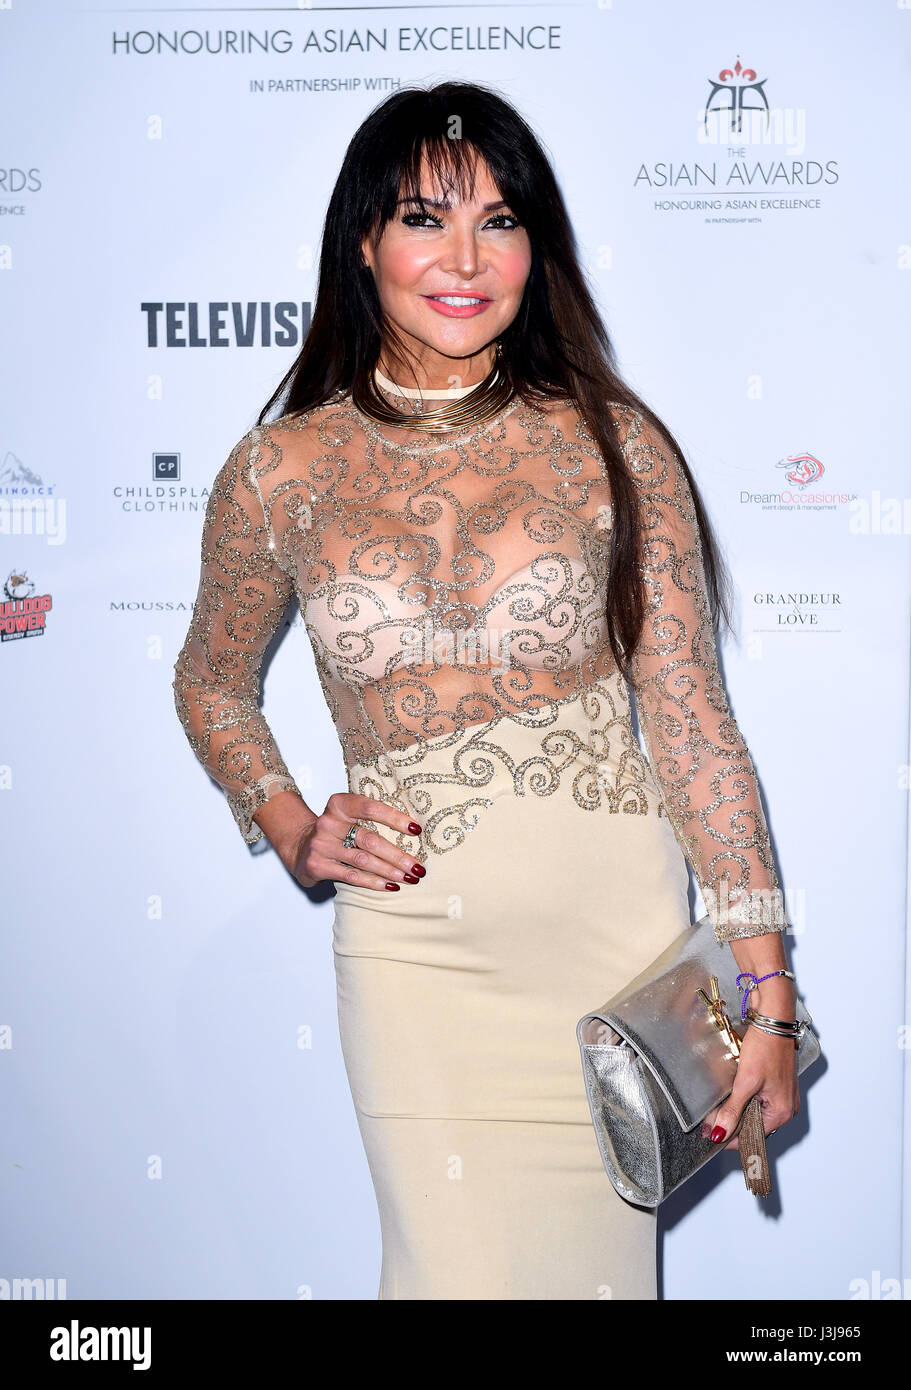 lizzie cundy attending the 7th annual asian awards at the hilton